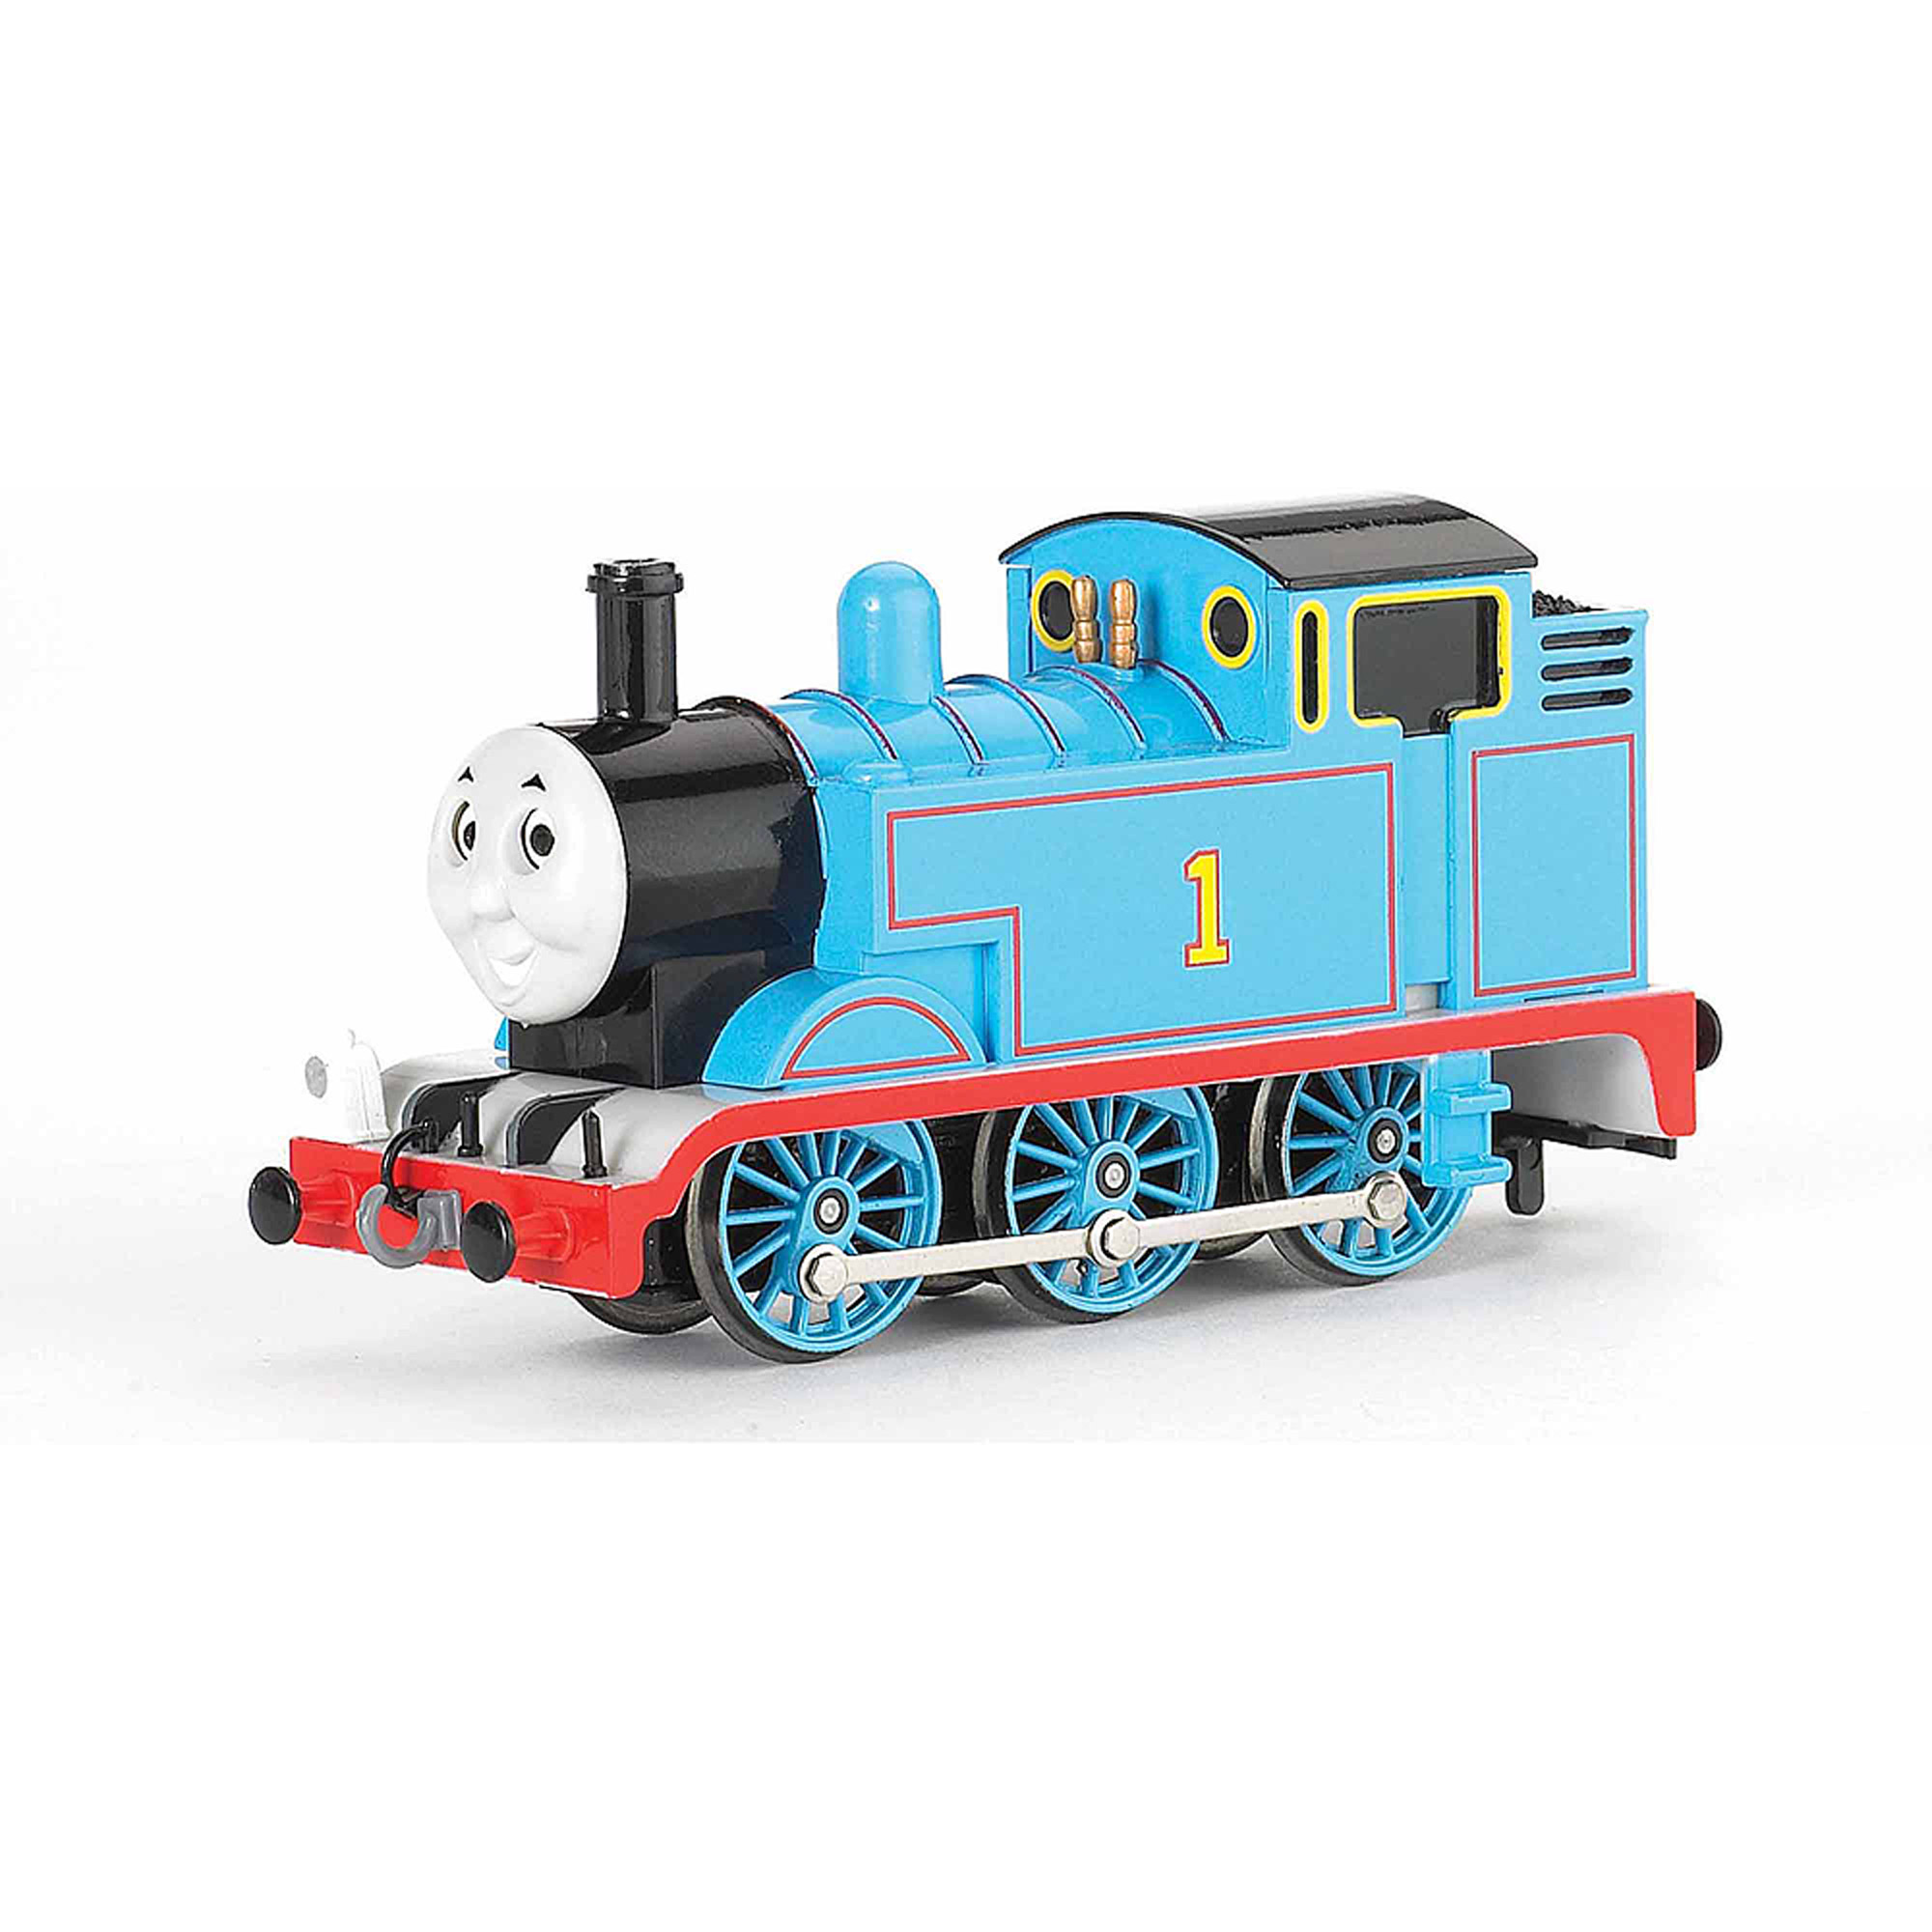 Bachmann Trains Thomas and Friends Thomas The Tank Engine Locomotive with Moving Eyes, HO Scale Train